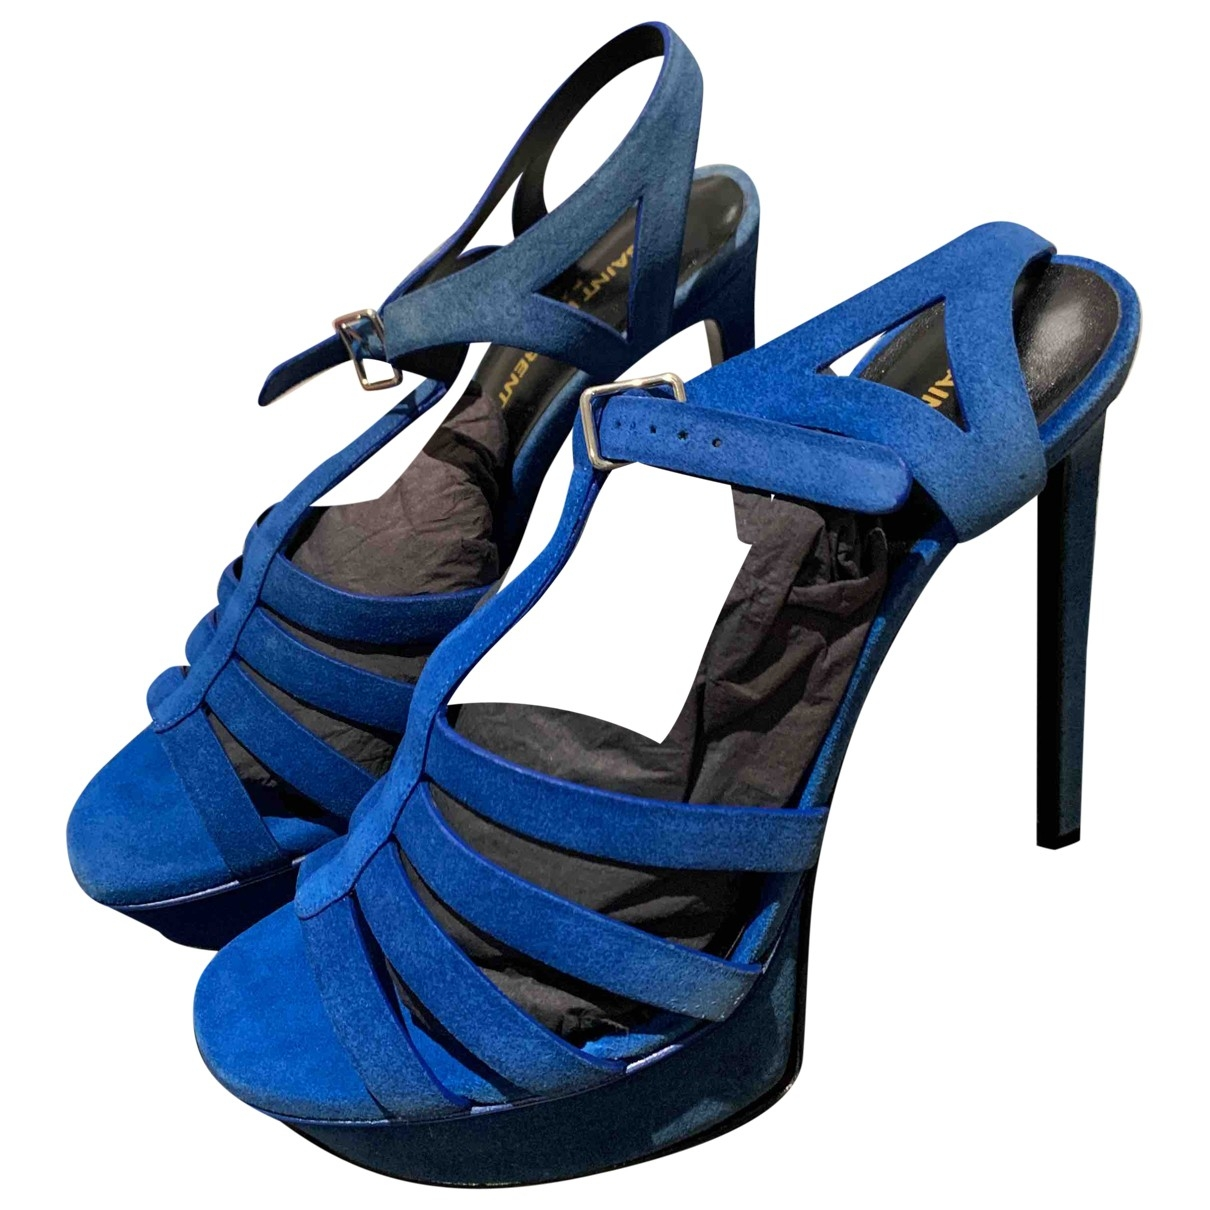 Saint Laurent Tribute Blue Suede Sandals for Women 39 EU